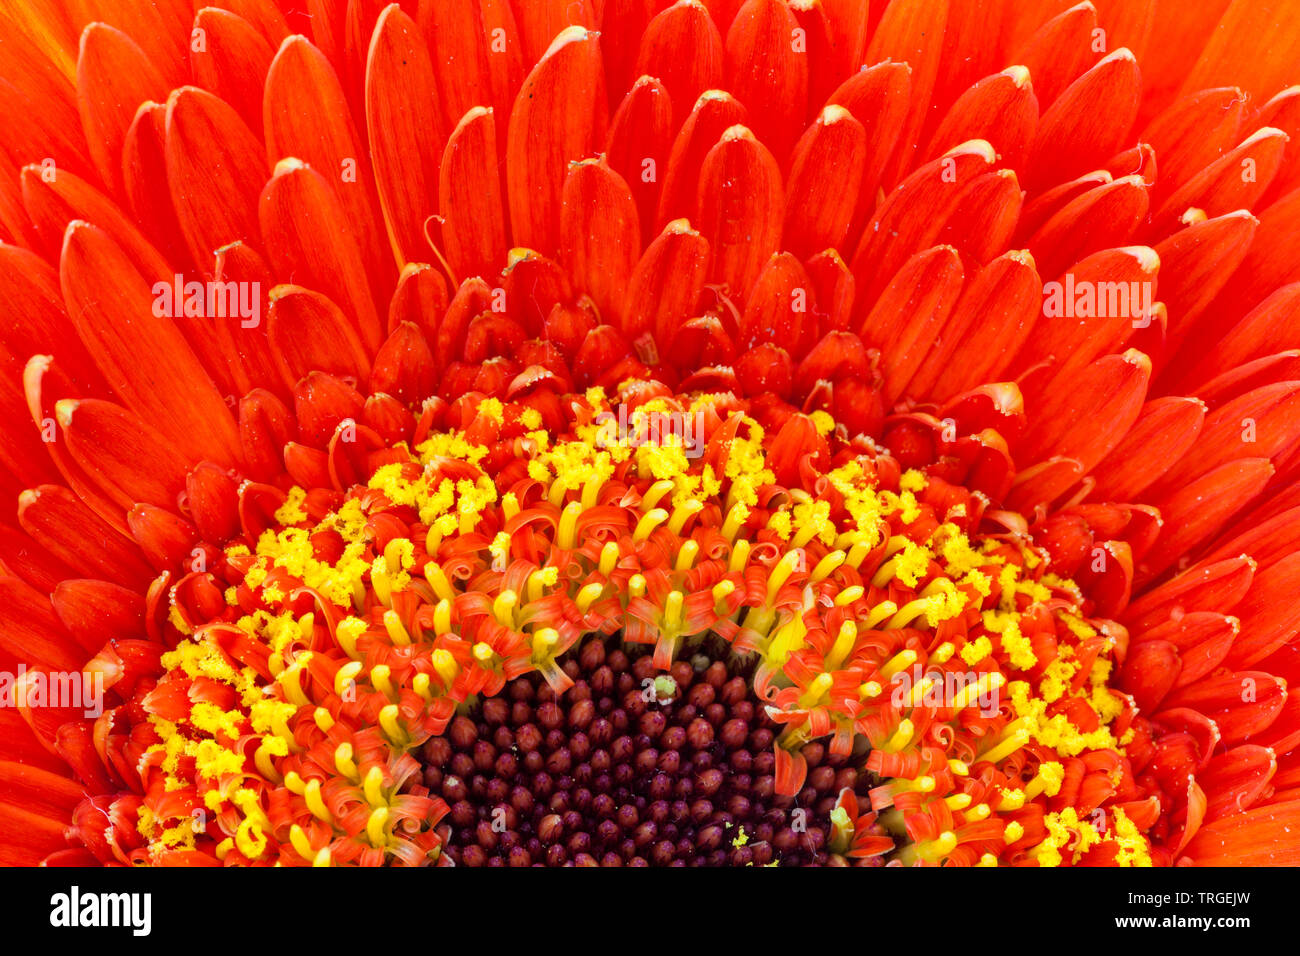 Macro image of a red flower with yellow details around a darker centre - Stock Image